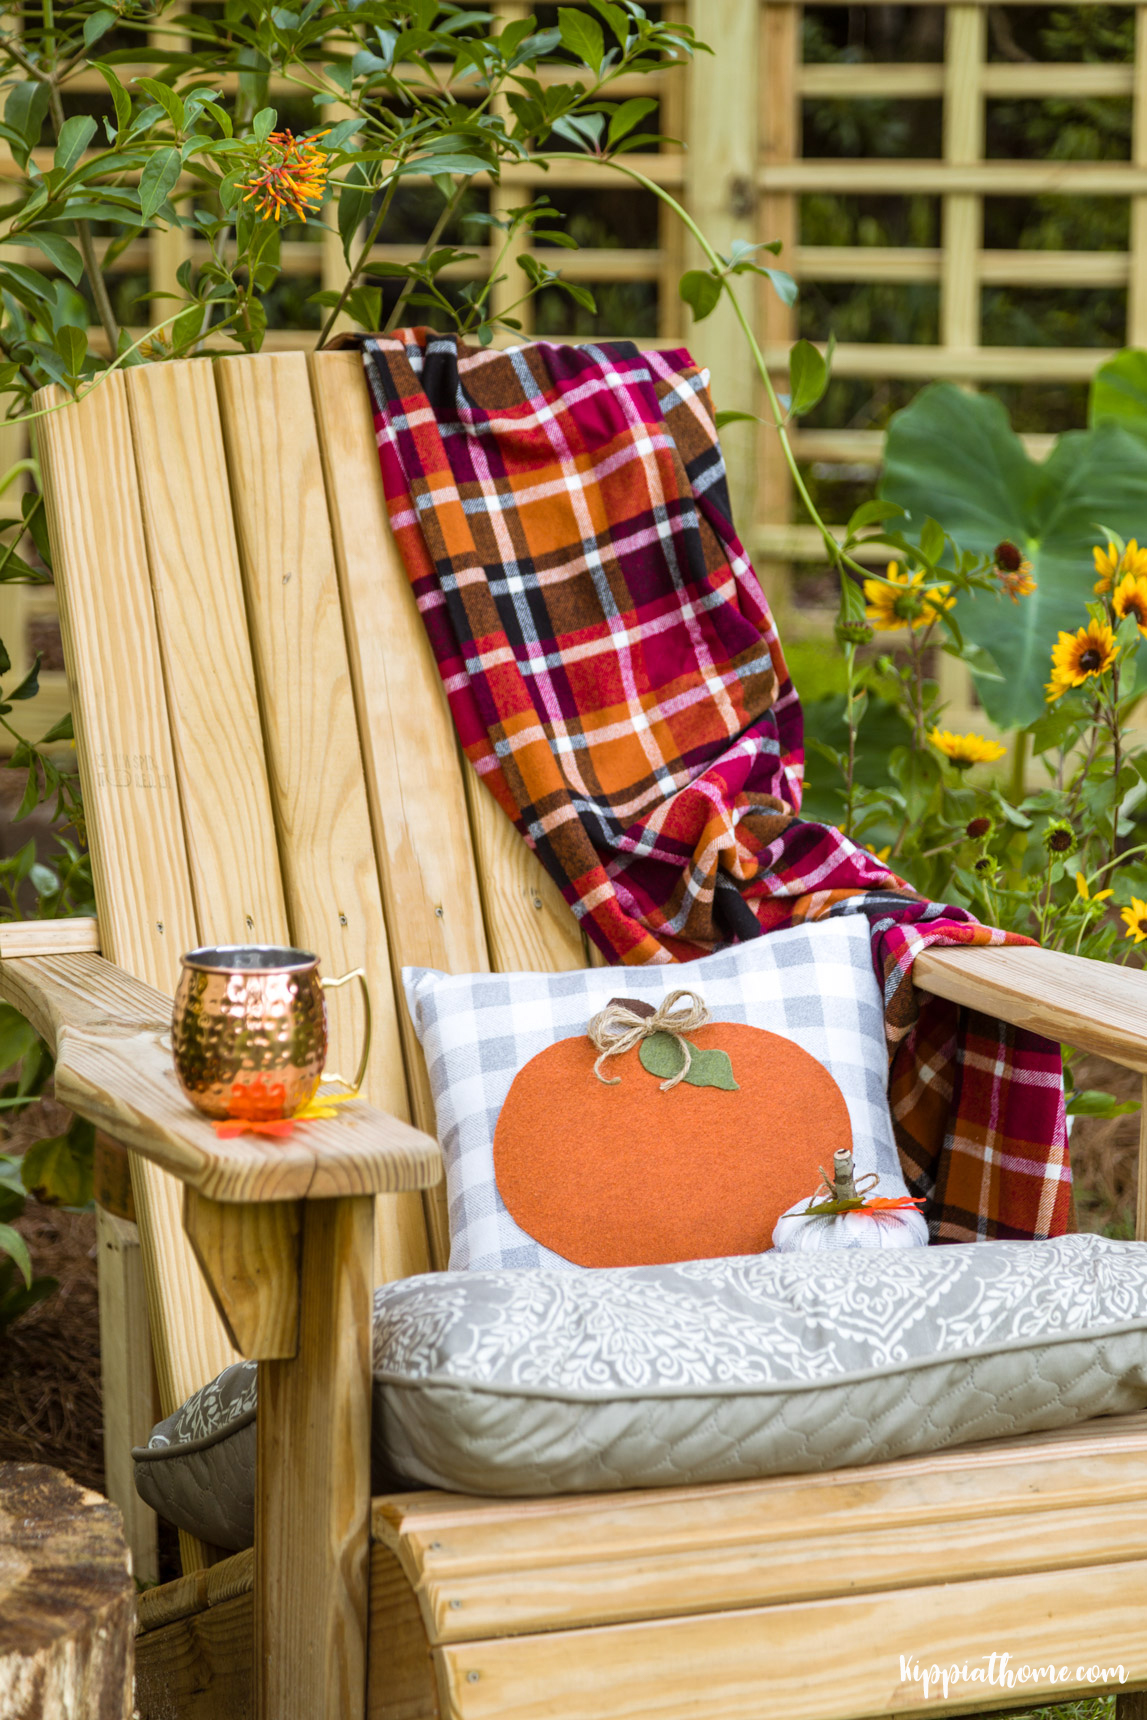 Chair with Pumpkin Pillow and throw